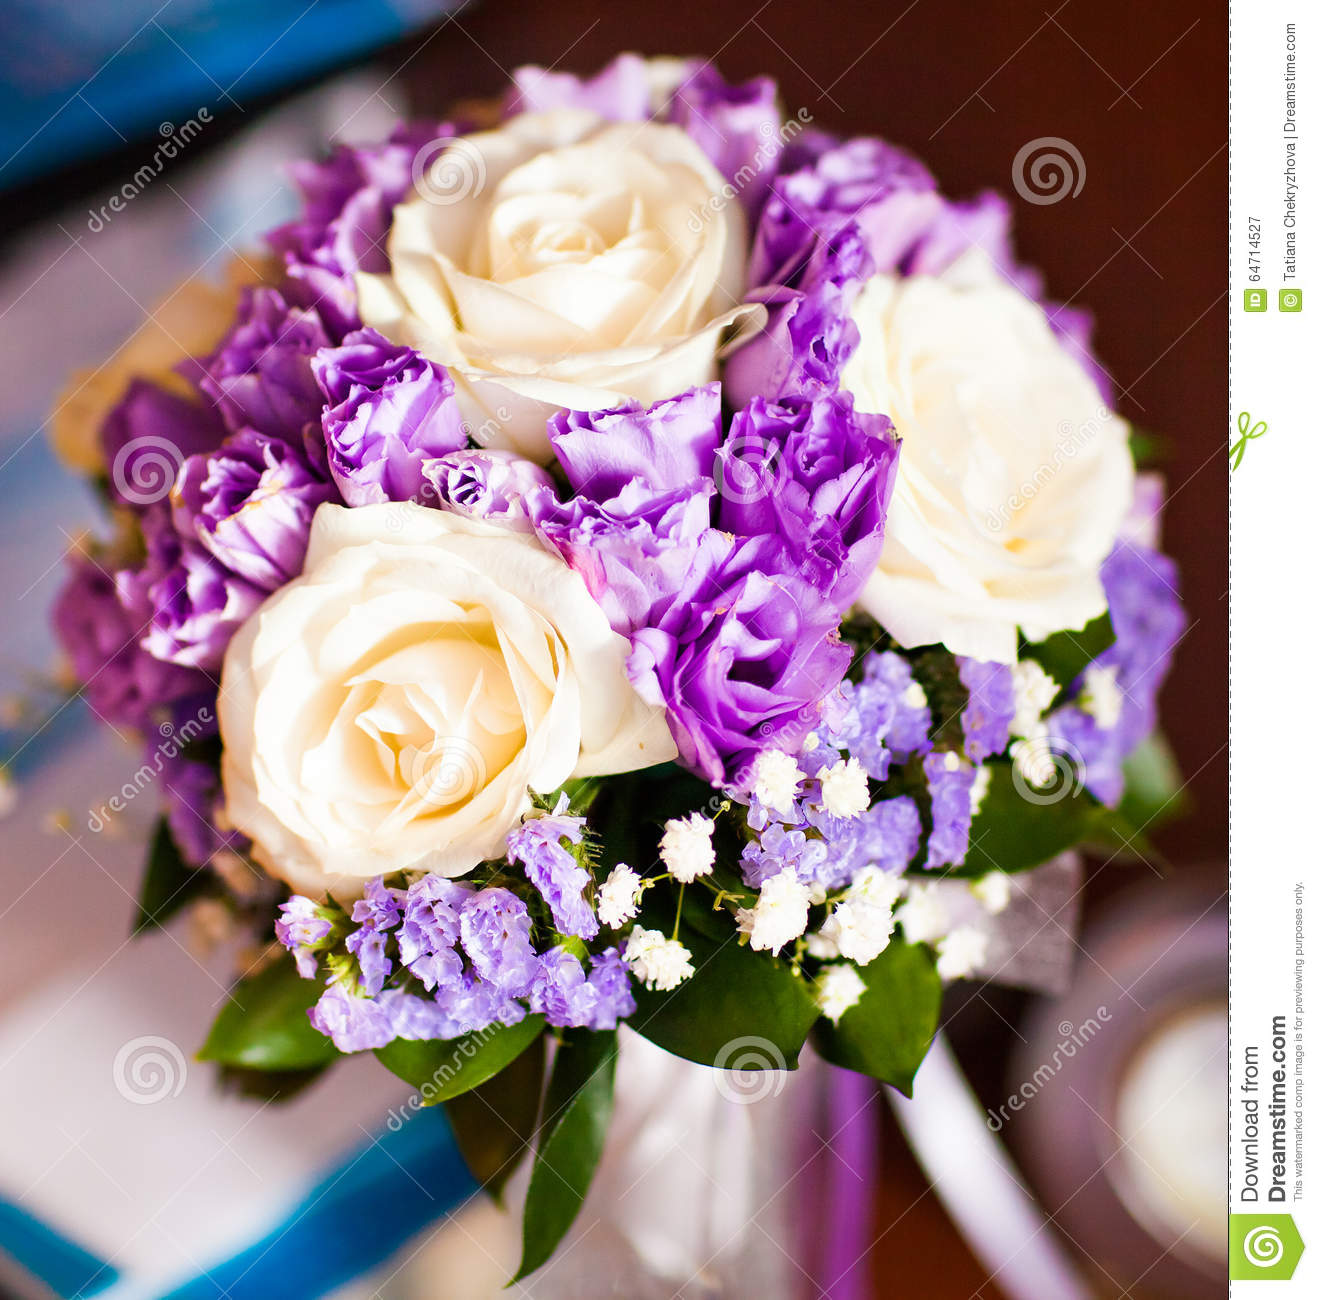 Brides bouquet with white roses and purple stock image image of bride s bouquet with white roses and purple mightylinksfo